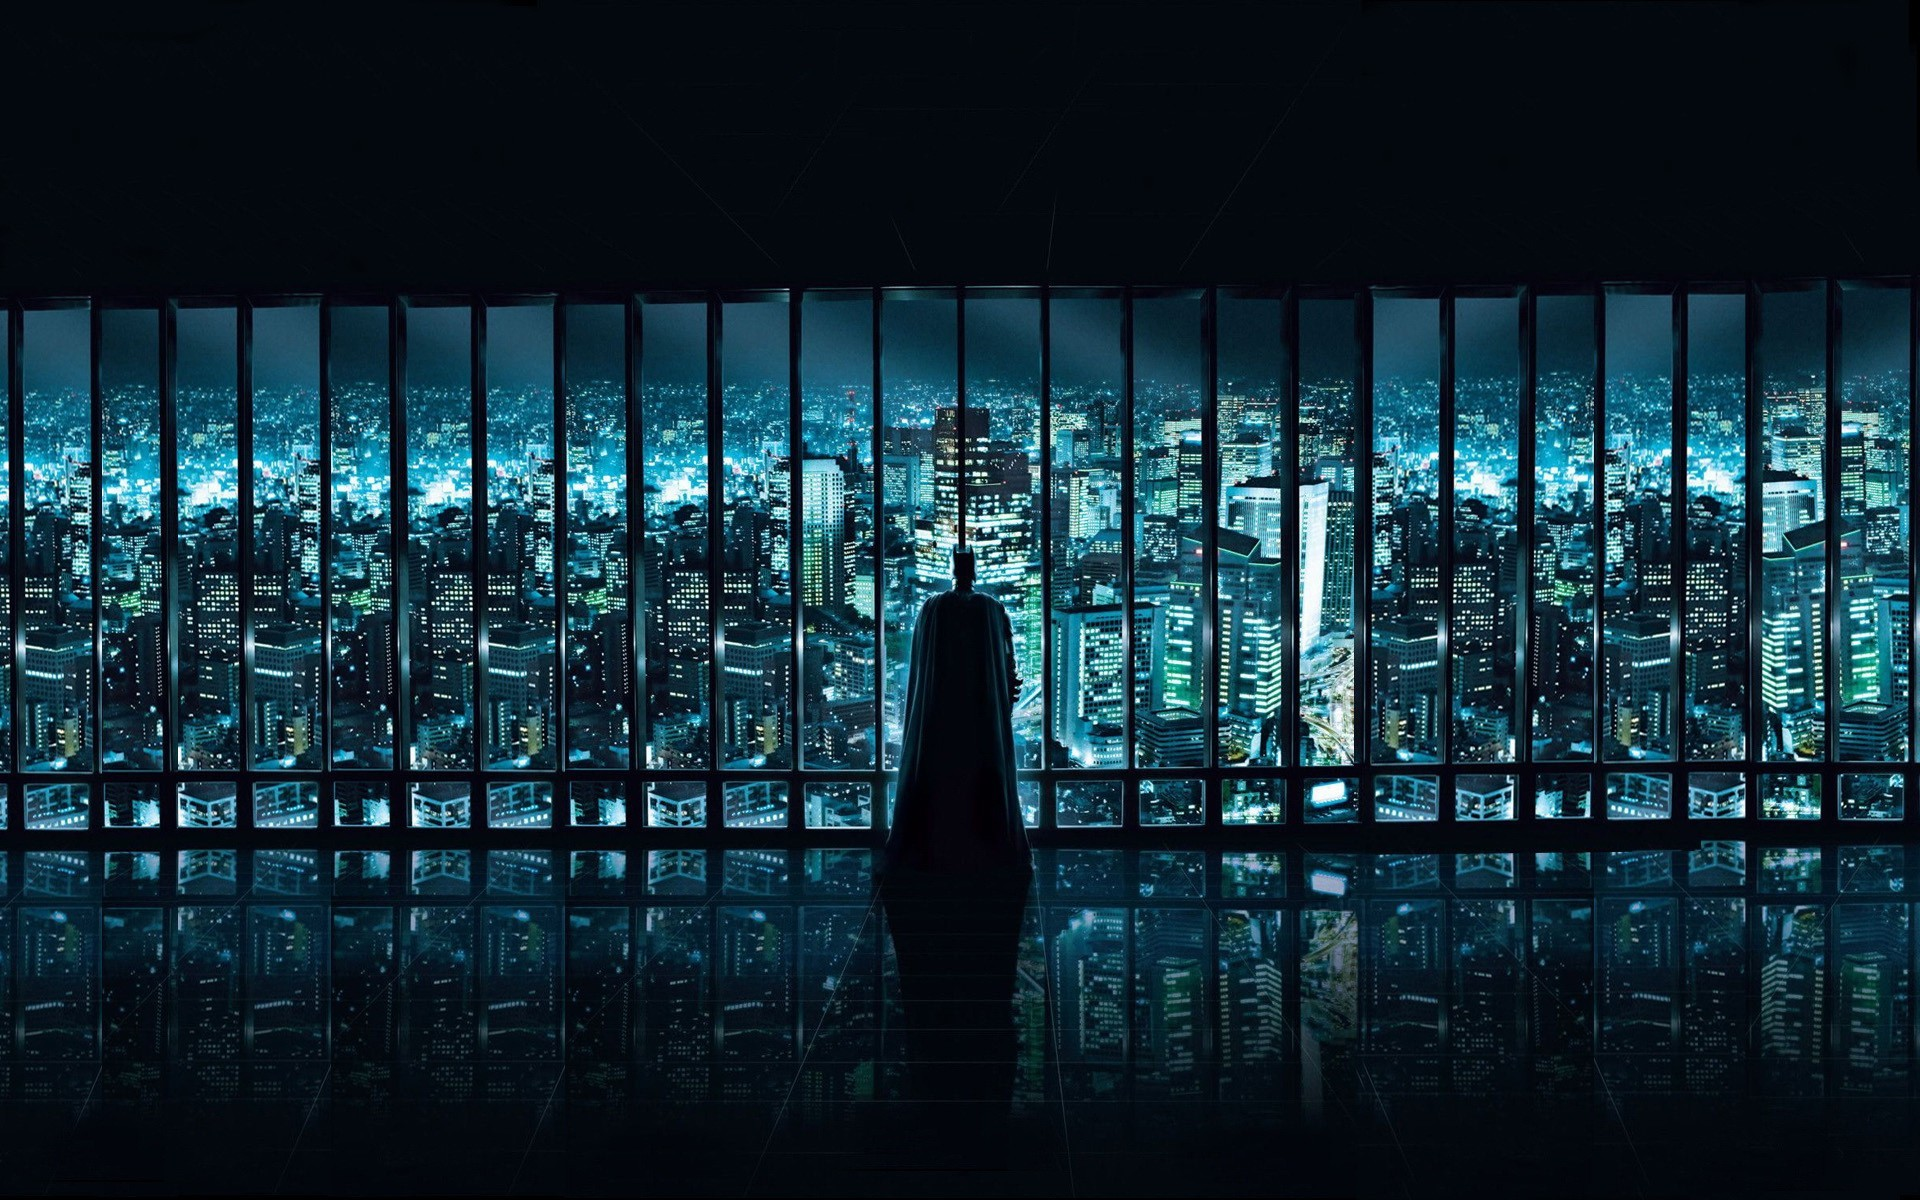 Batman Wallpapers for Computer 5189 - HD Wallpapers Site